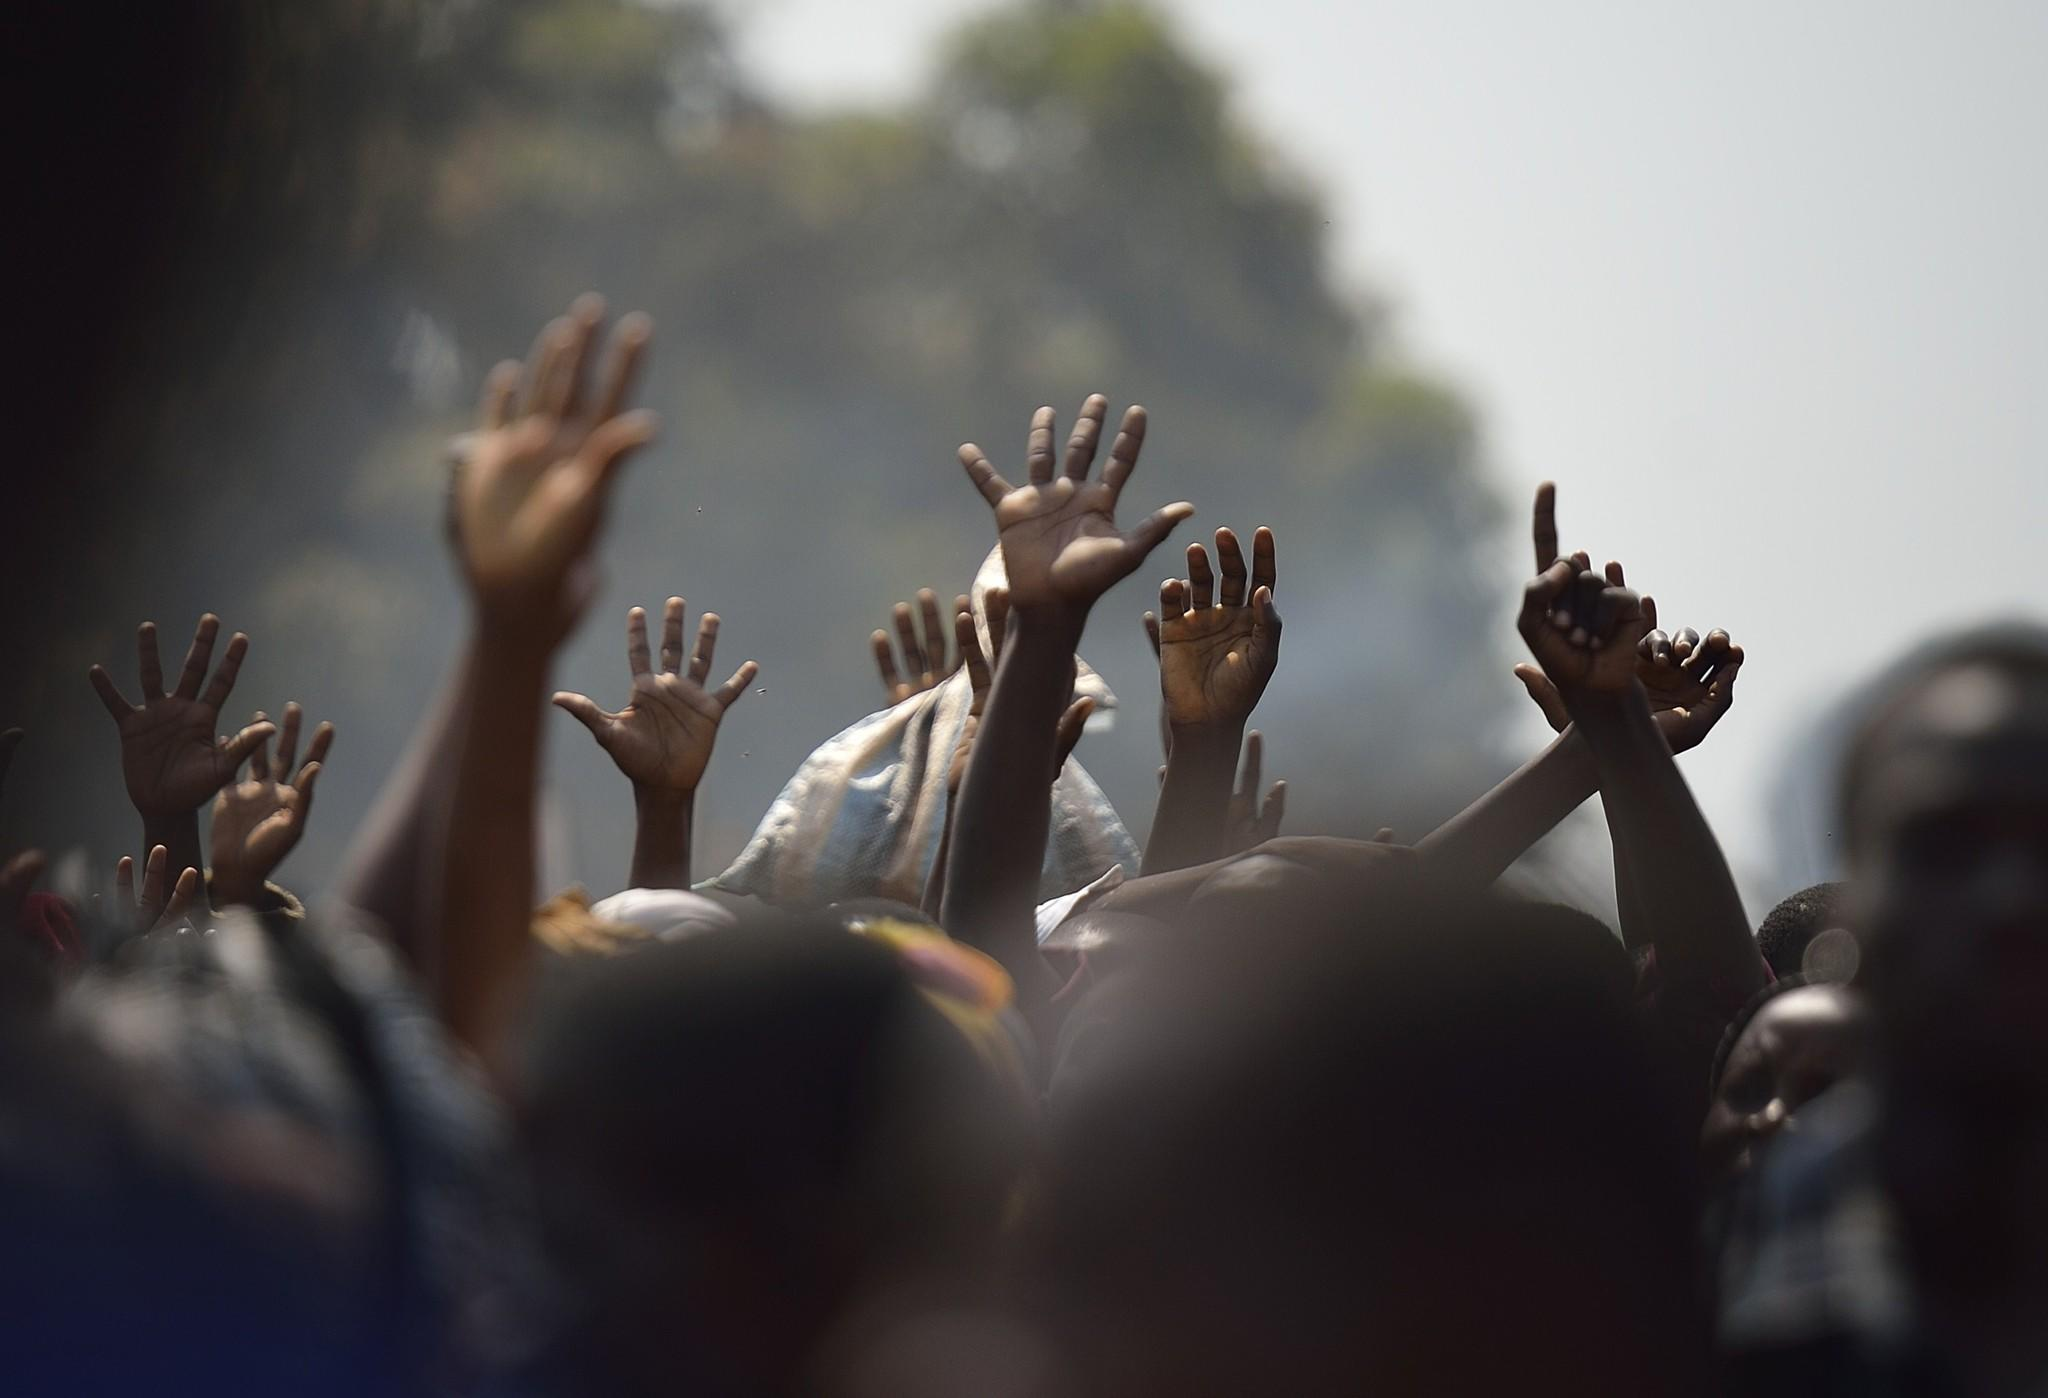 Displaced people raise their hands as they wait for food distribution in central Africa.